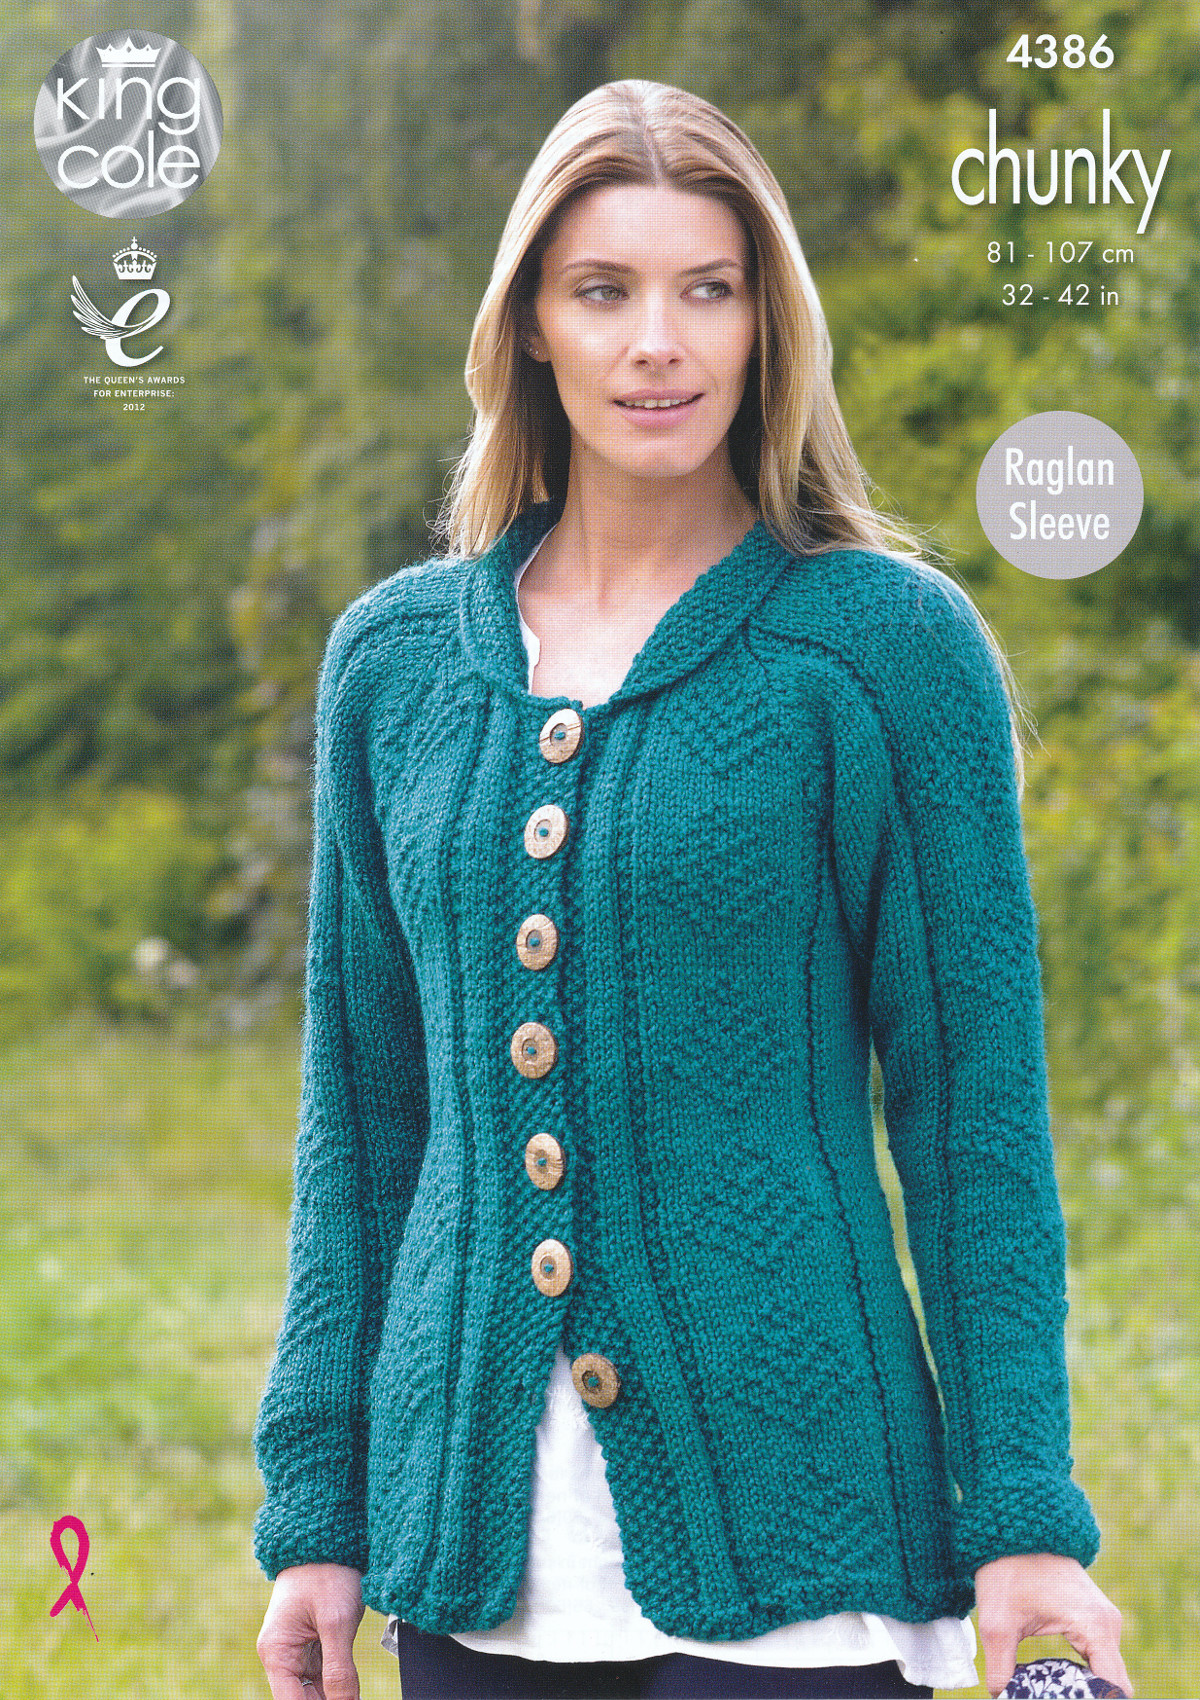 Knitting Pattern For Chunky Ladies Cardigan : Ladies Chunky Knitting Pattern King Cole Womens Raglan Sleeve Cardigan Coat 4...